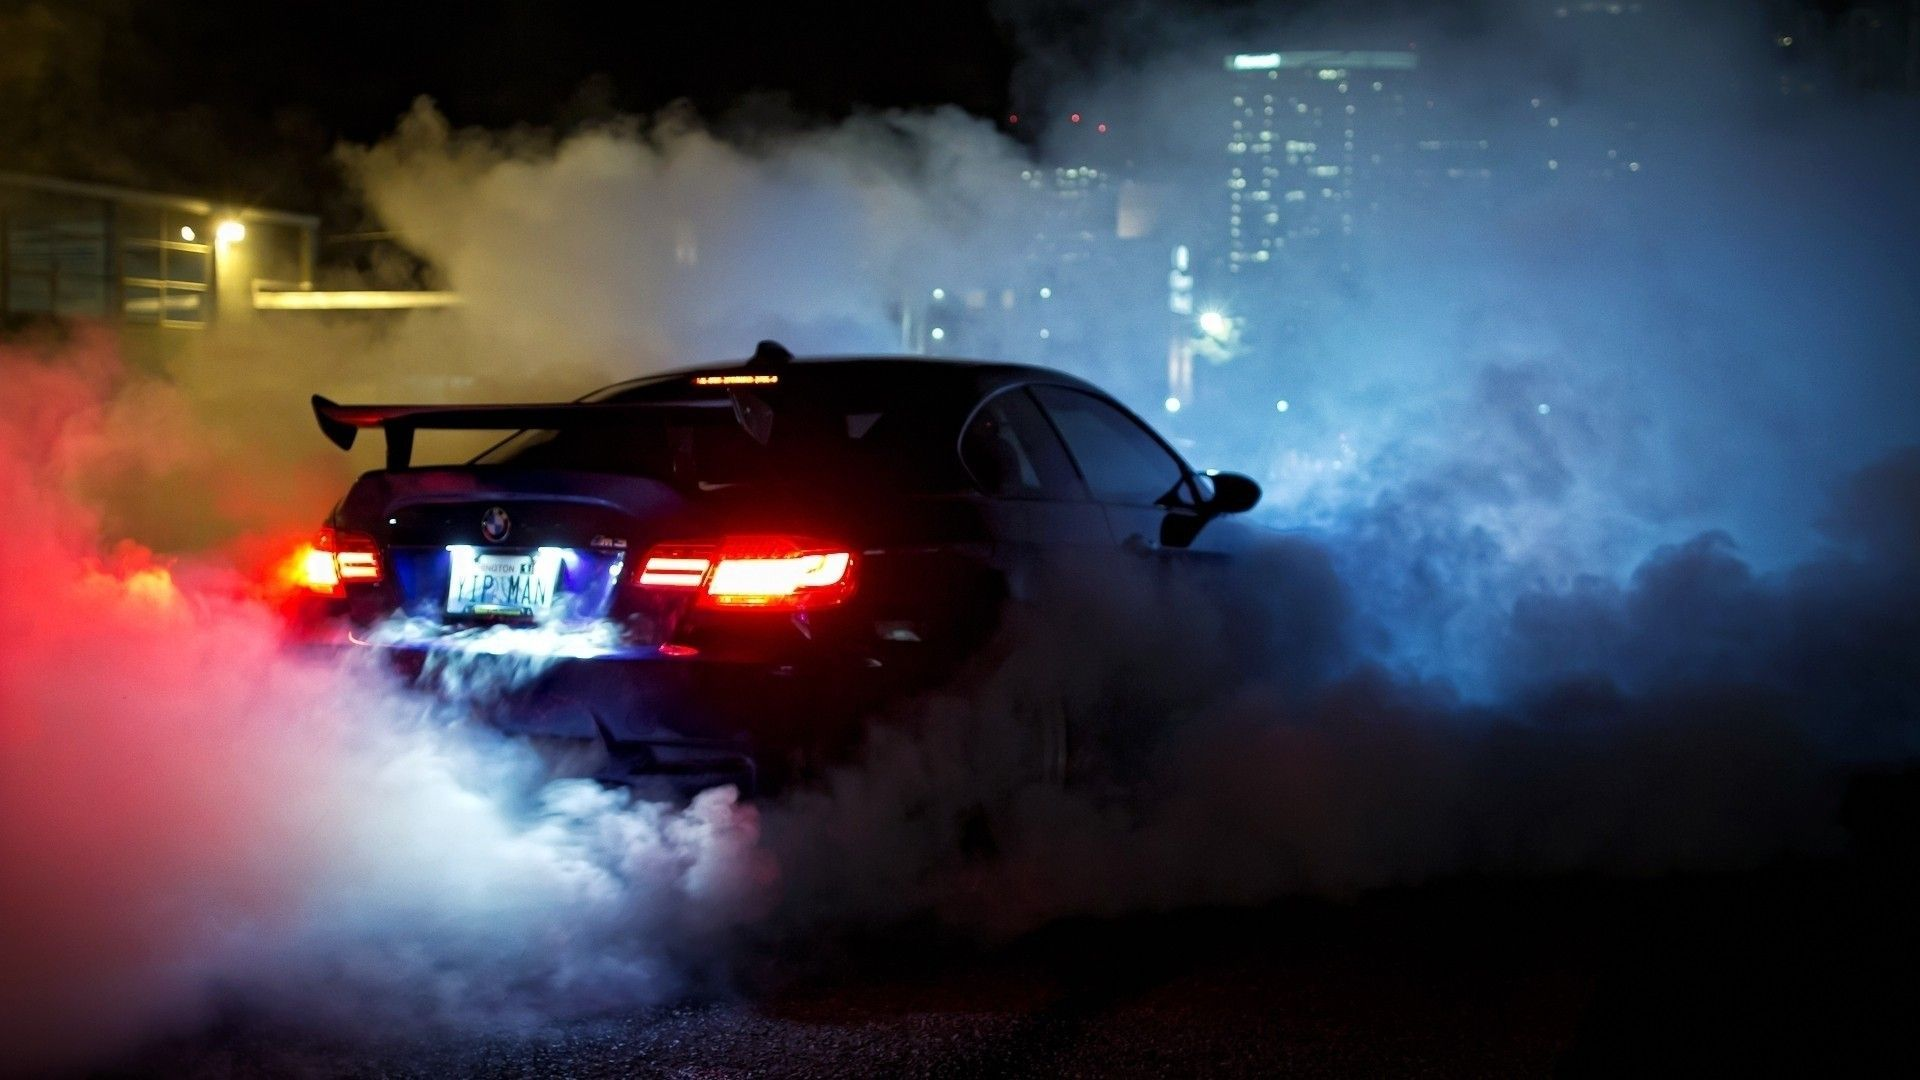 Night Car Wallpaper Hd Wallpress Free Wallpaper Site